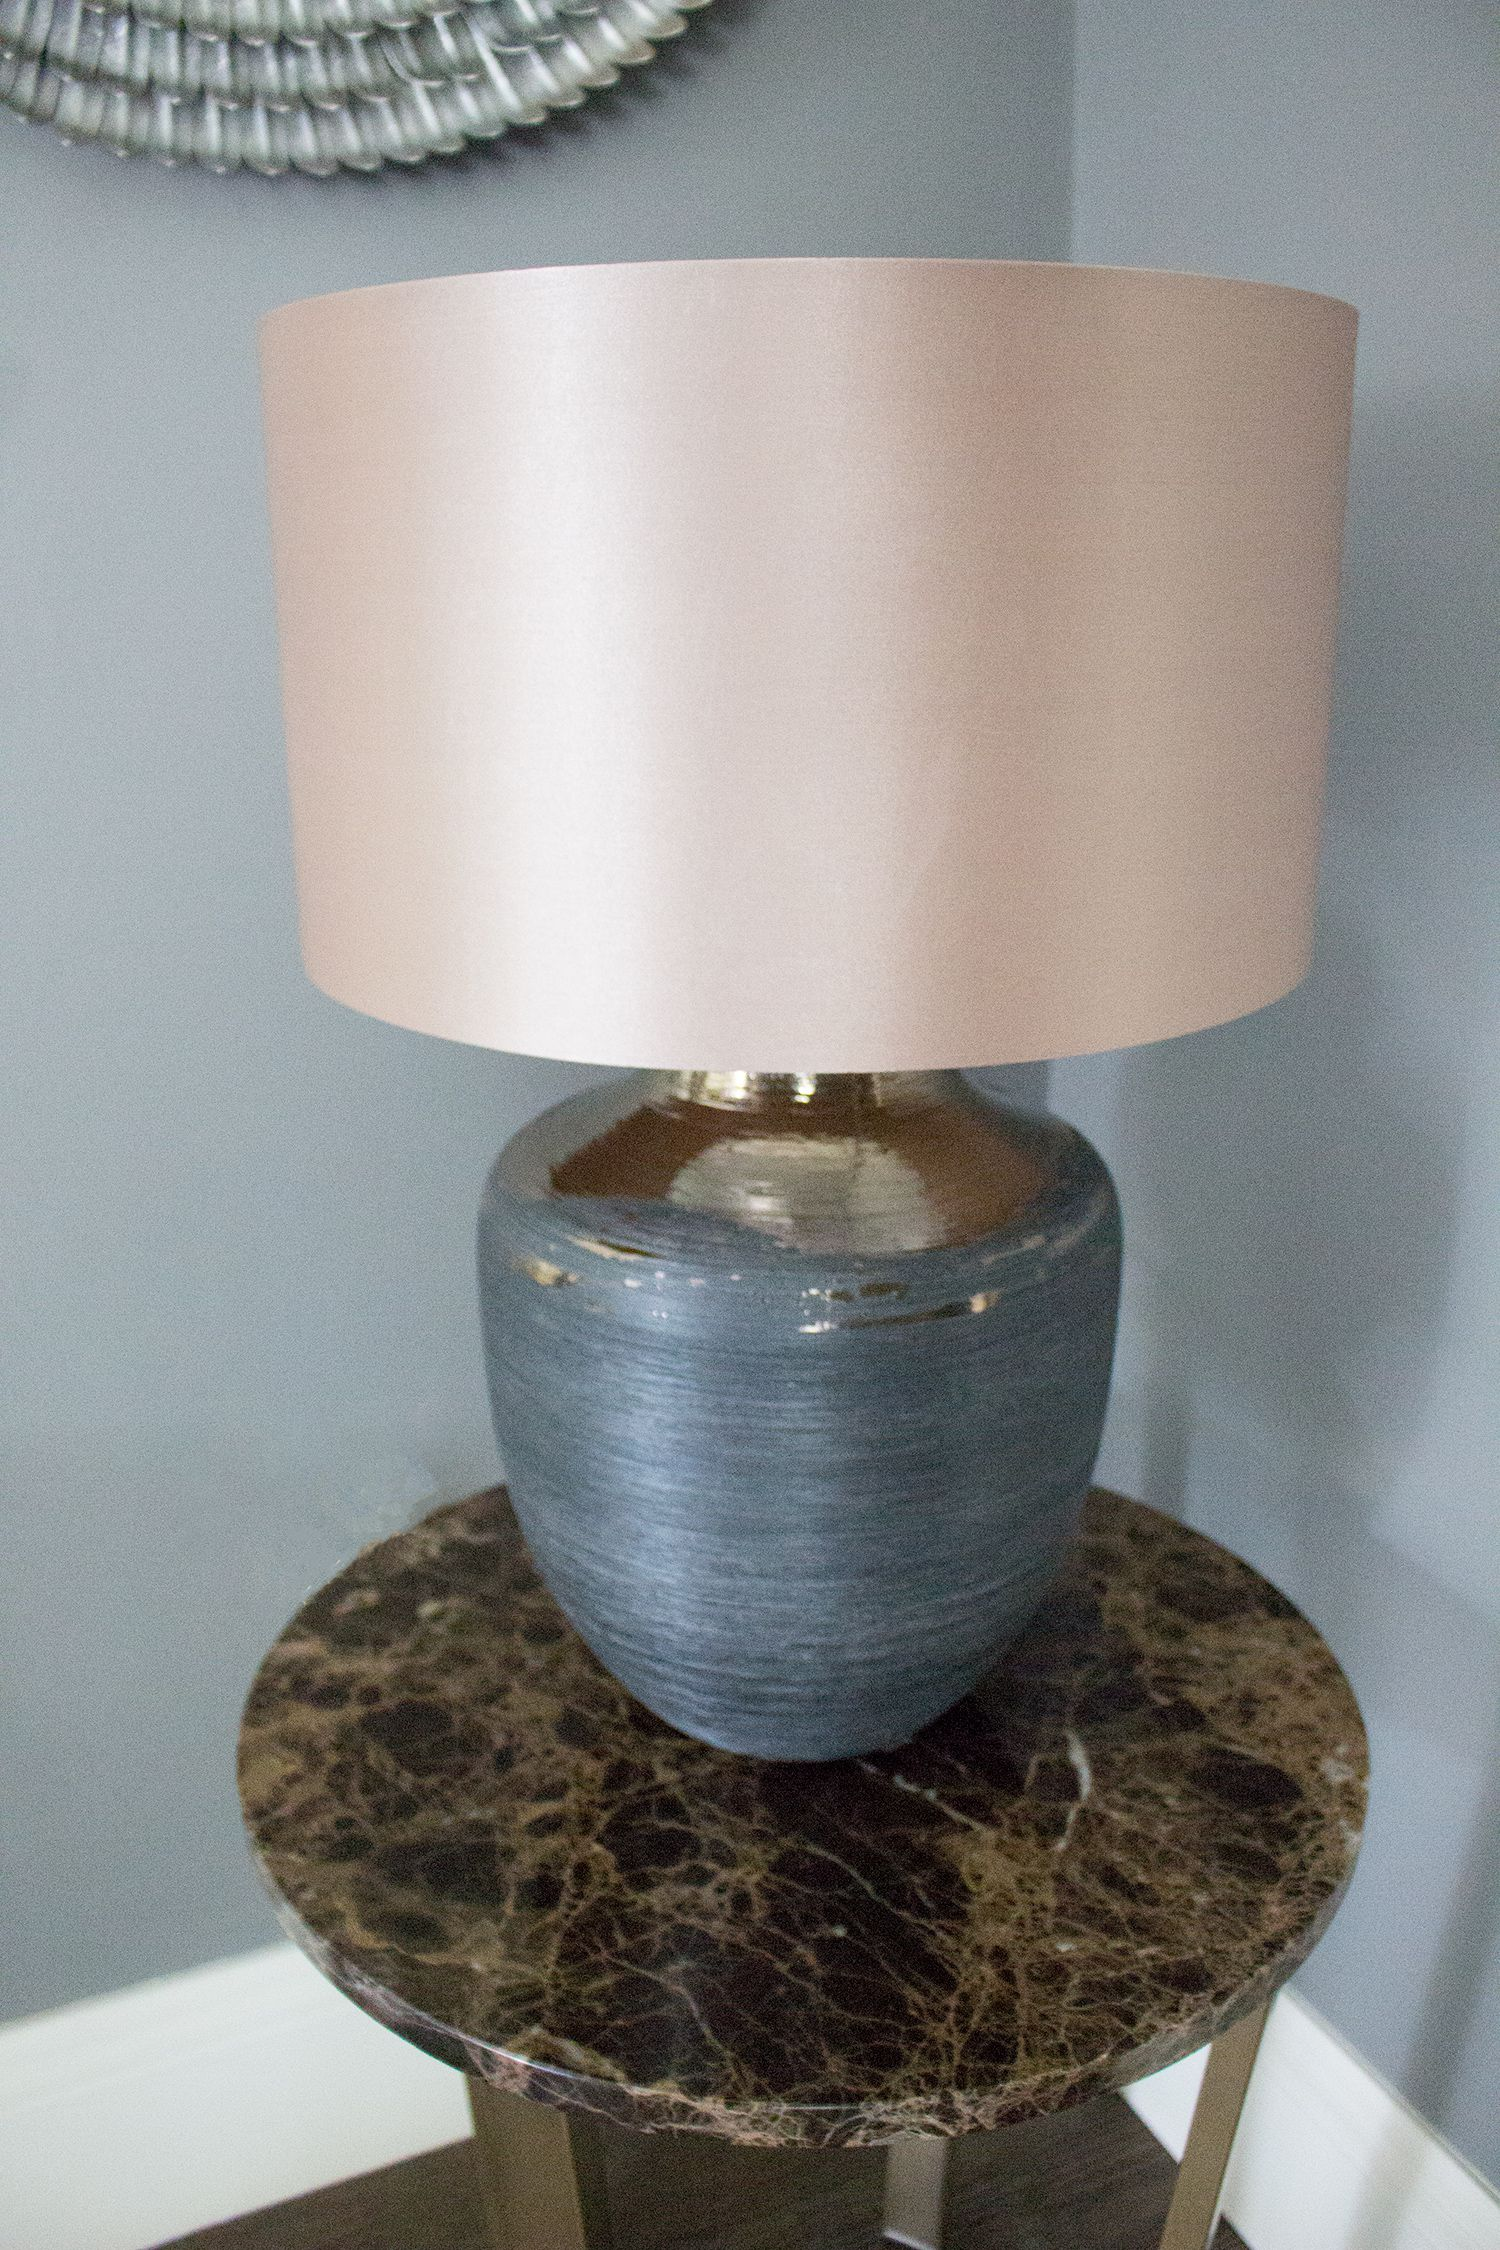 A close up of the new marble topped side table, with the black lamp base and grey satin lampshade.